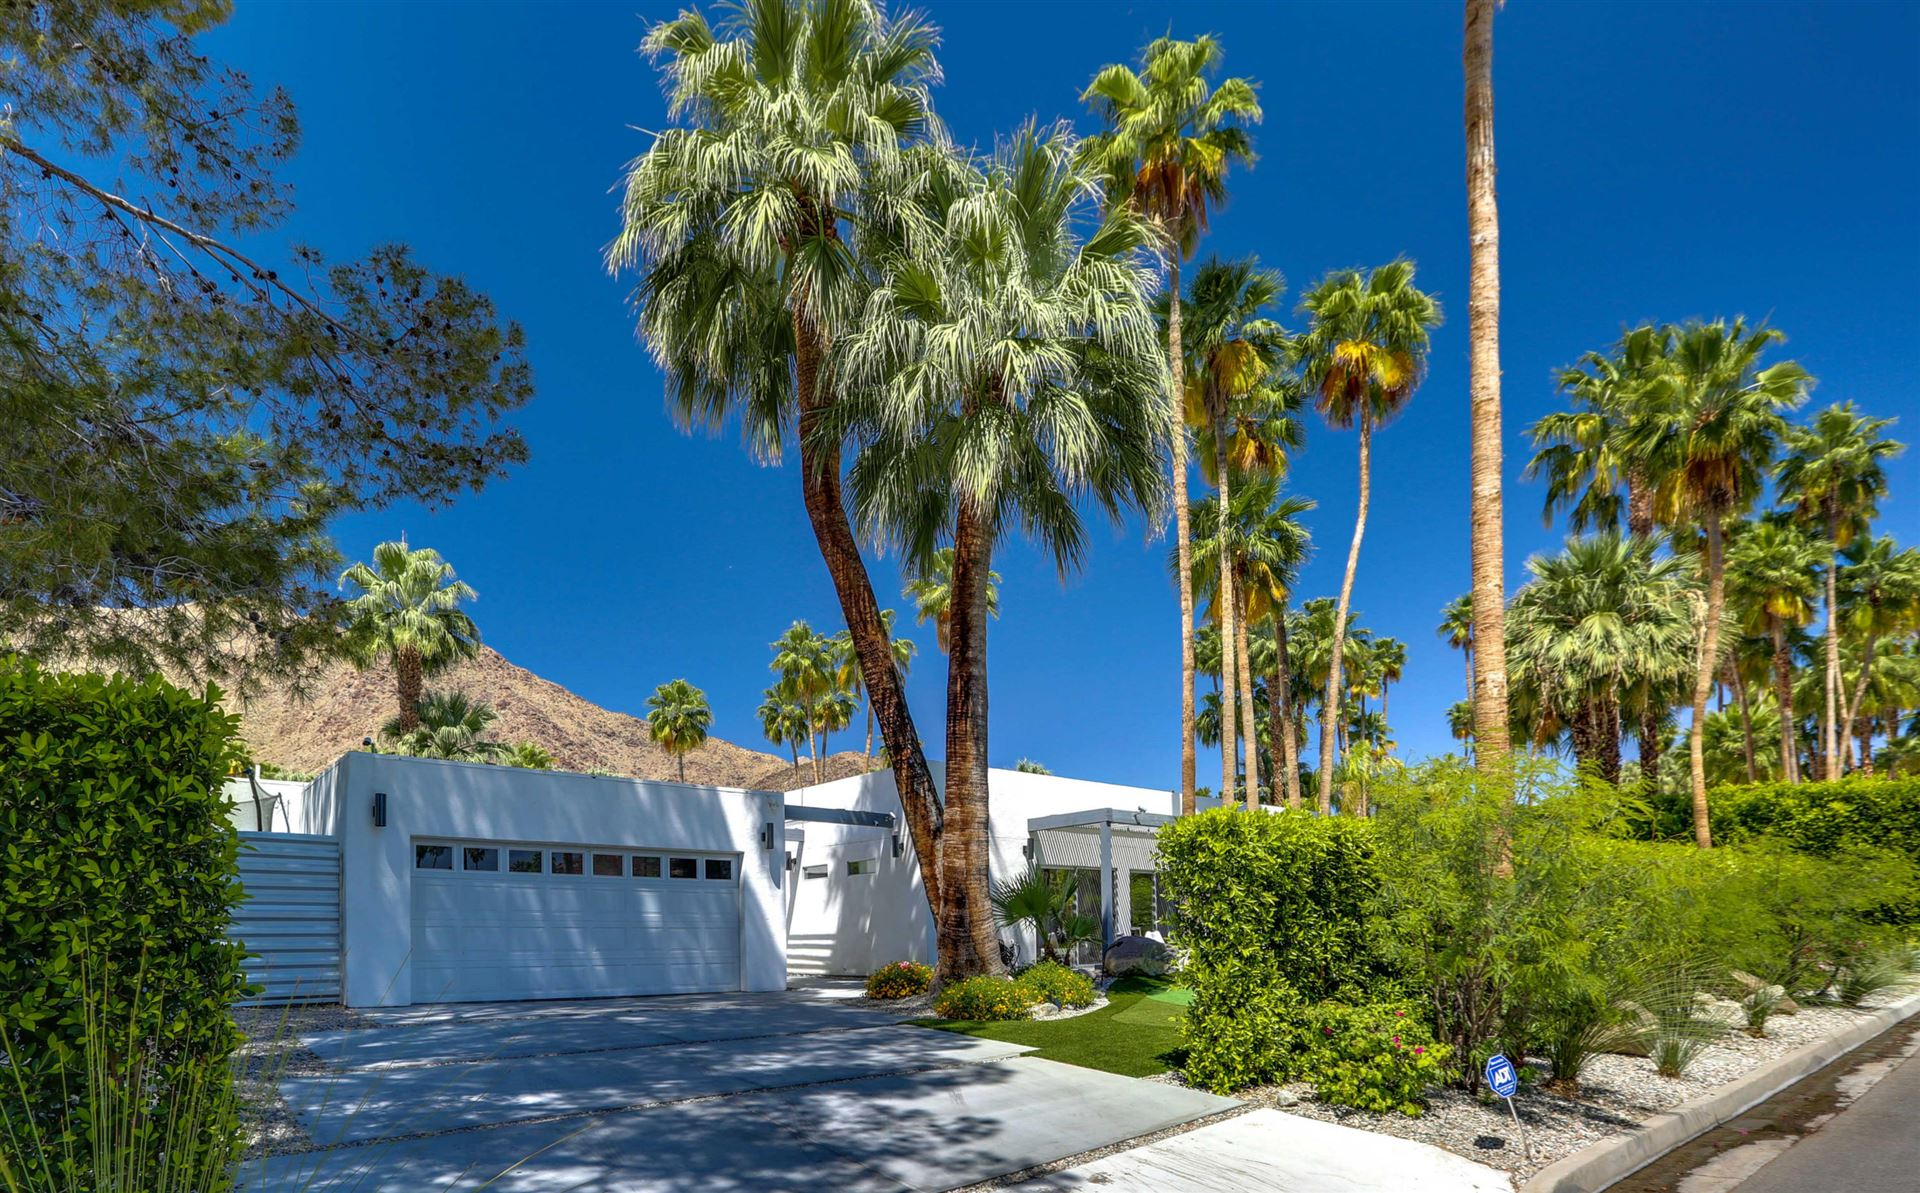 985 N Via Monte Vista, Palm Springs, CA 92262 - #: 219038936